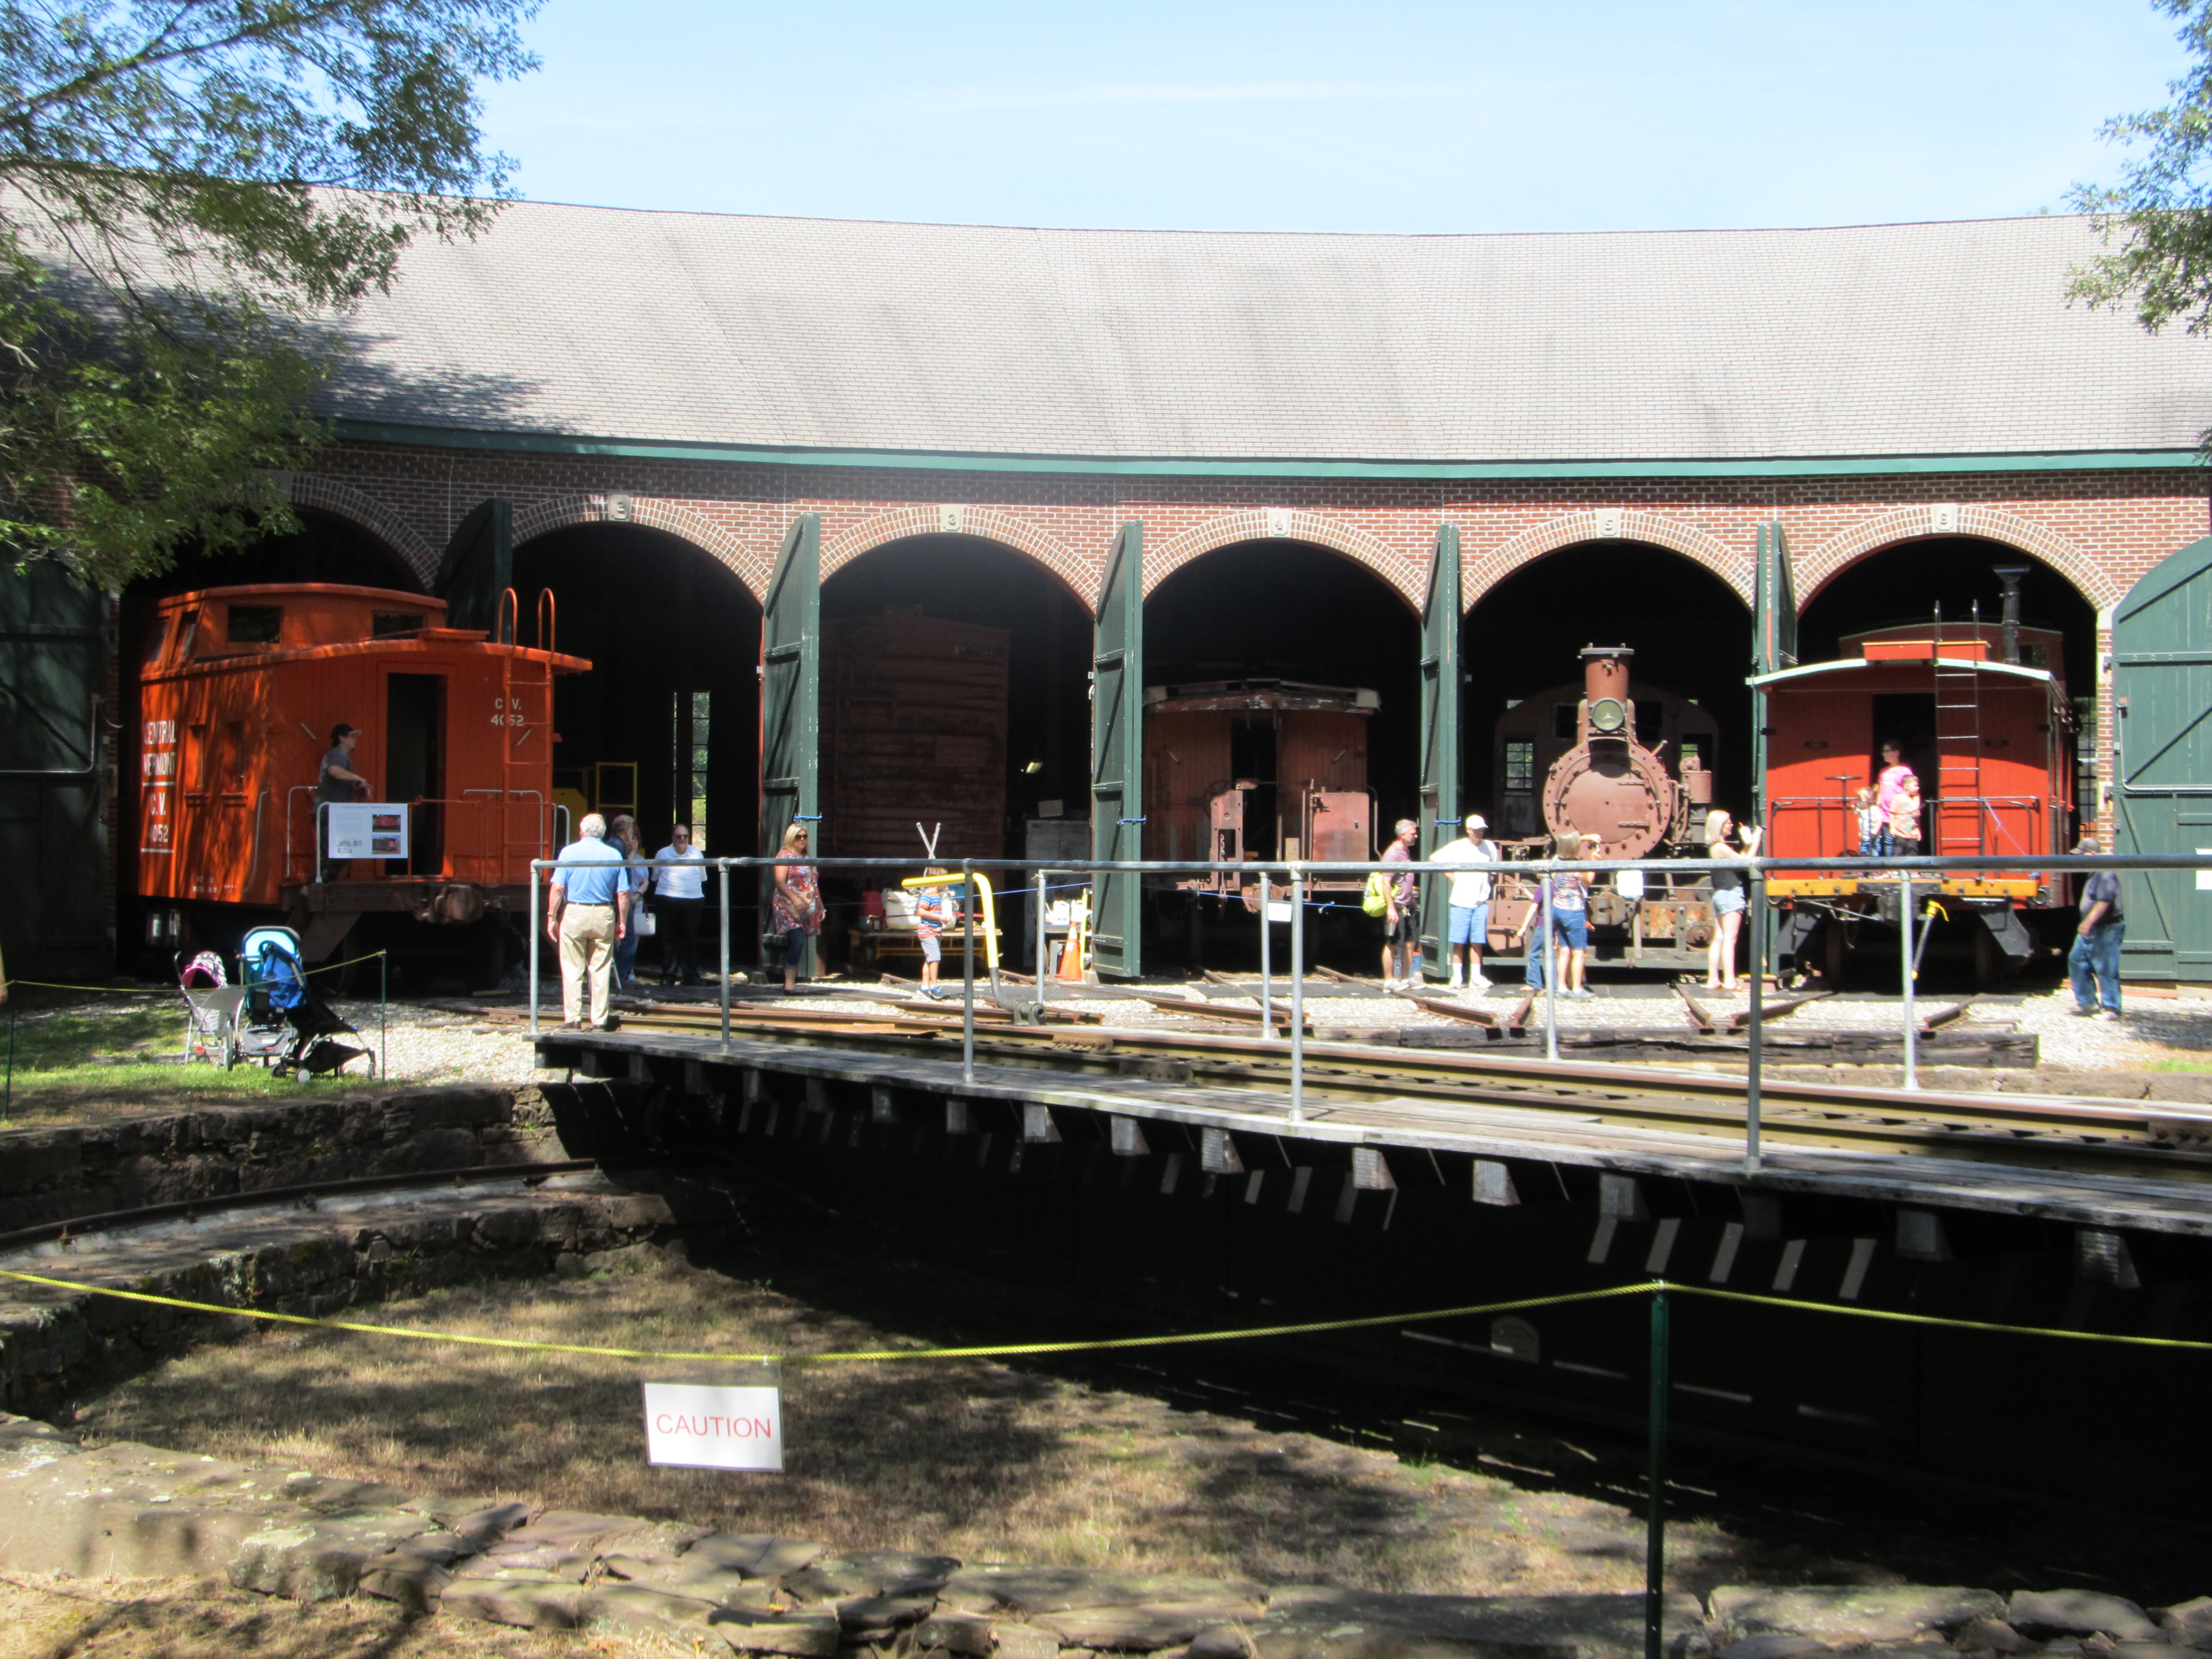 CERM roundhouse with visitors